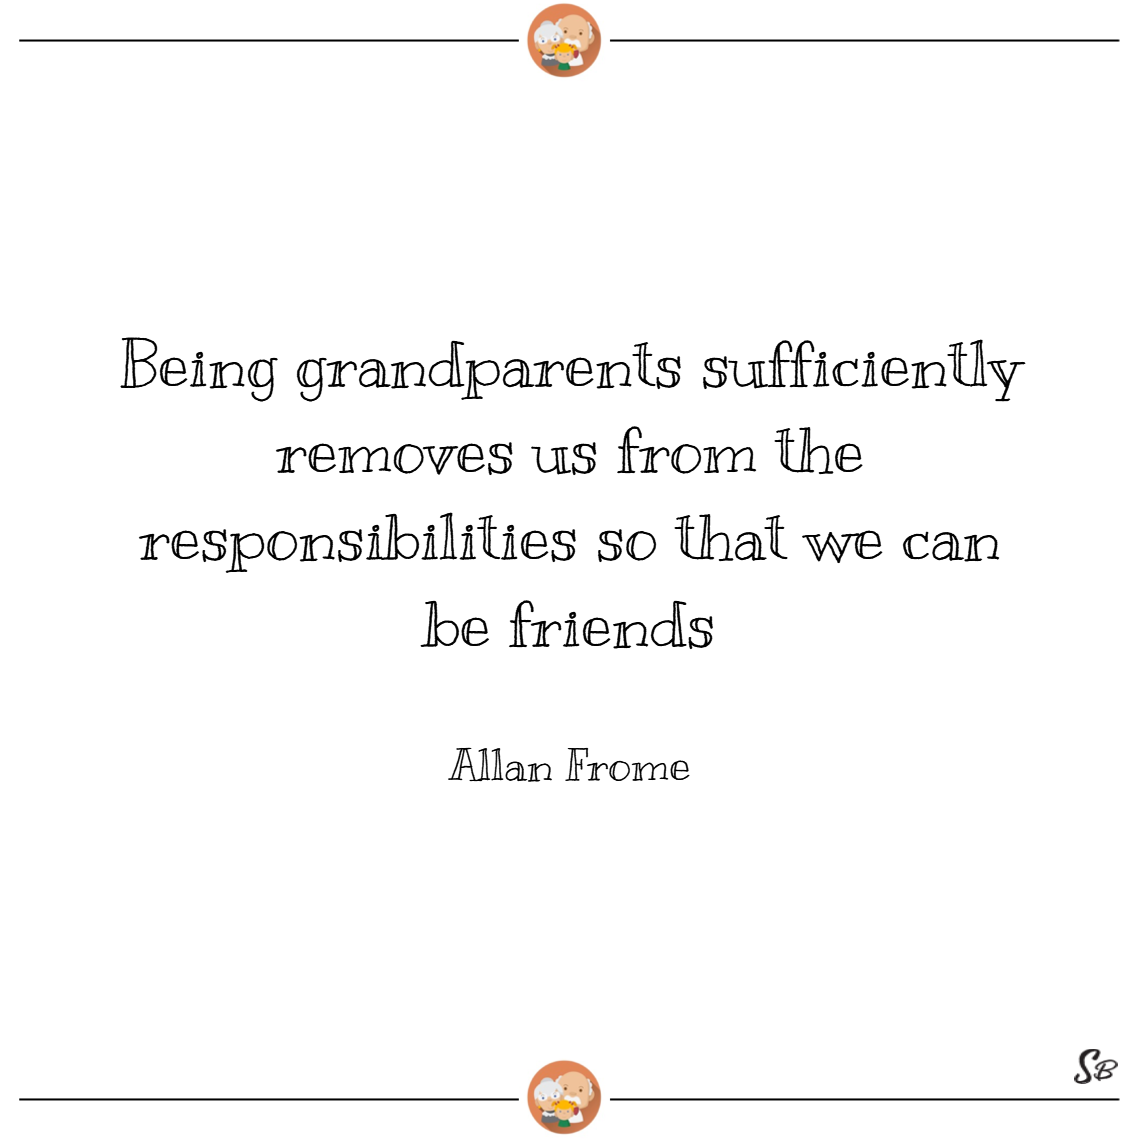 Being grandparents sufficiently removes us from the responsibilities so that we can be friends. – allan frome